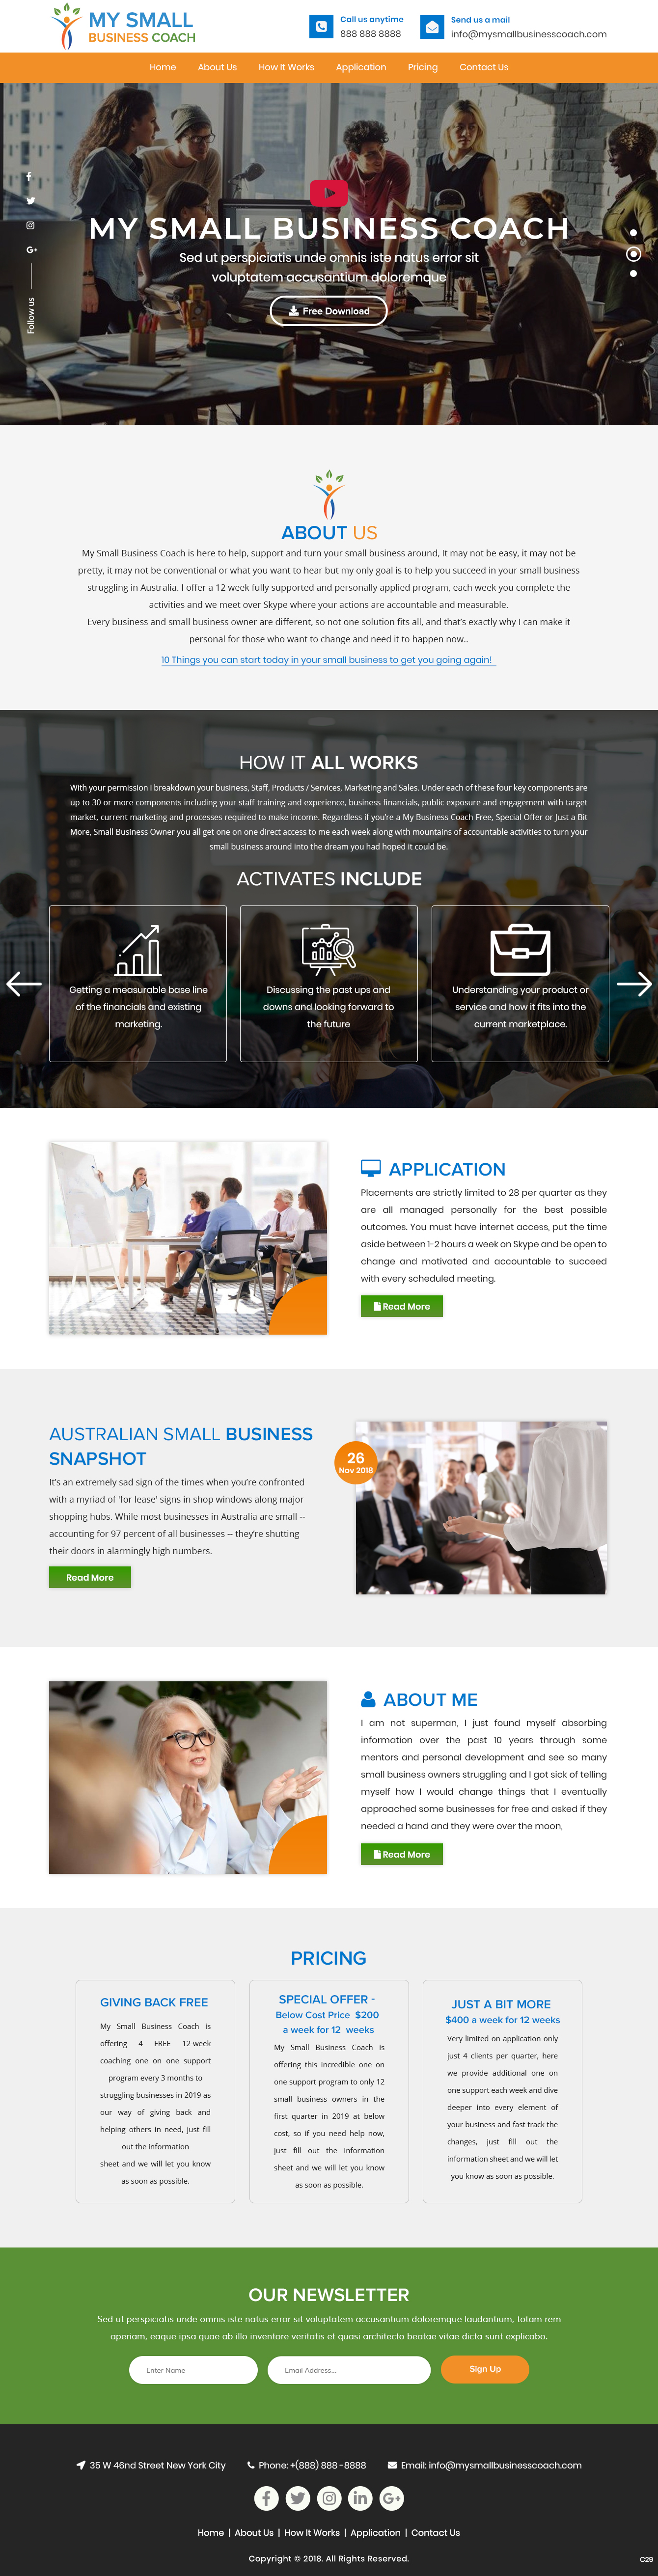 Modern Professional Business Consultant Web Design For My Small Business Coach By Pb Design 20640023